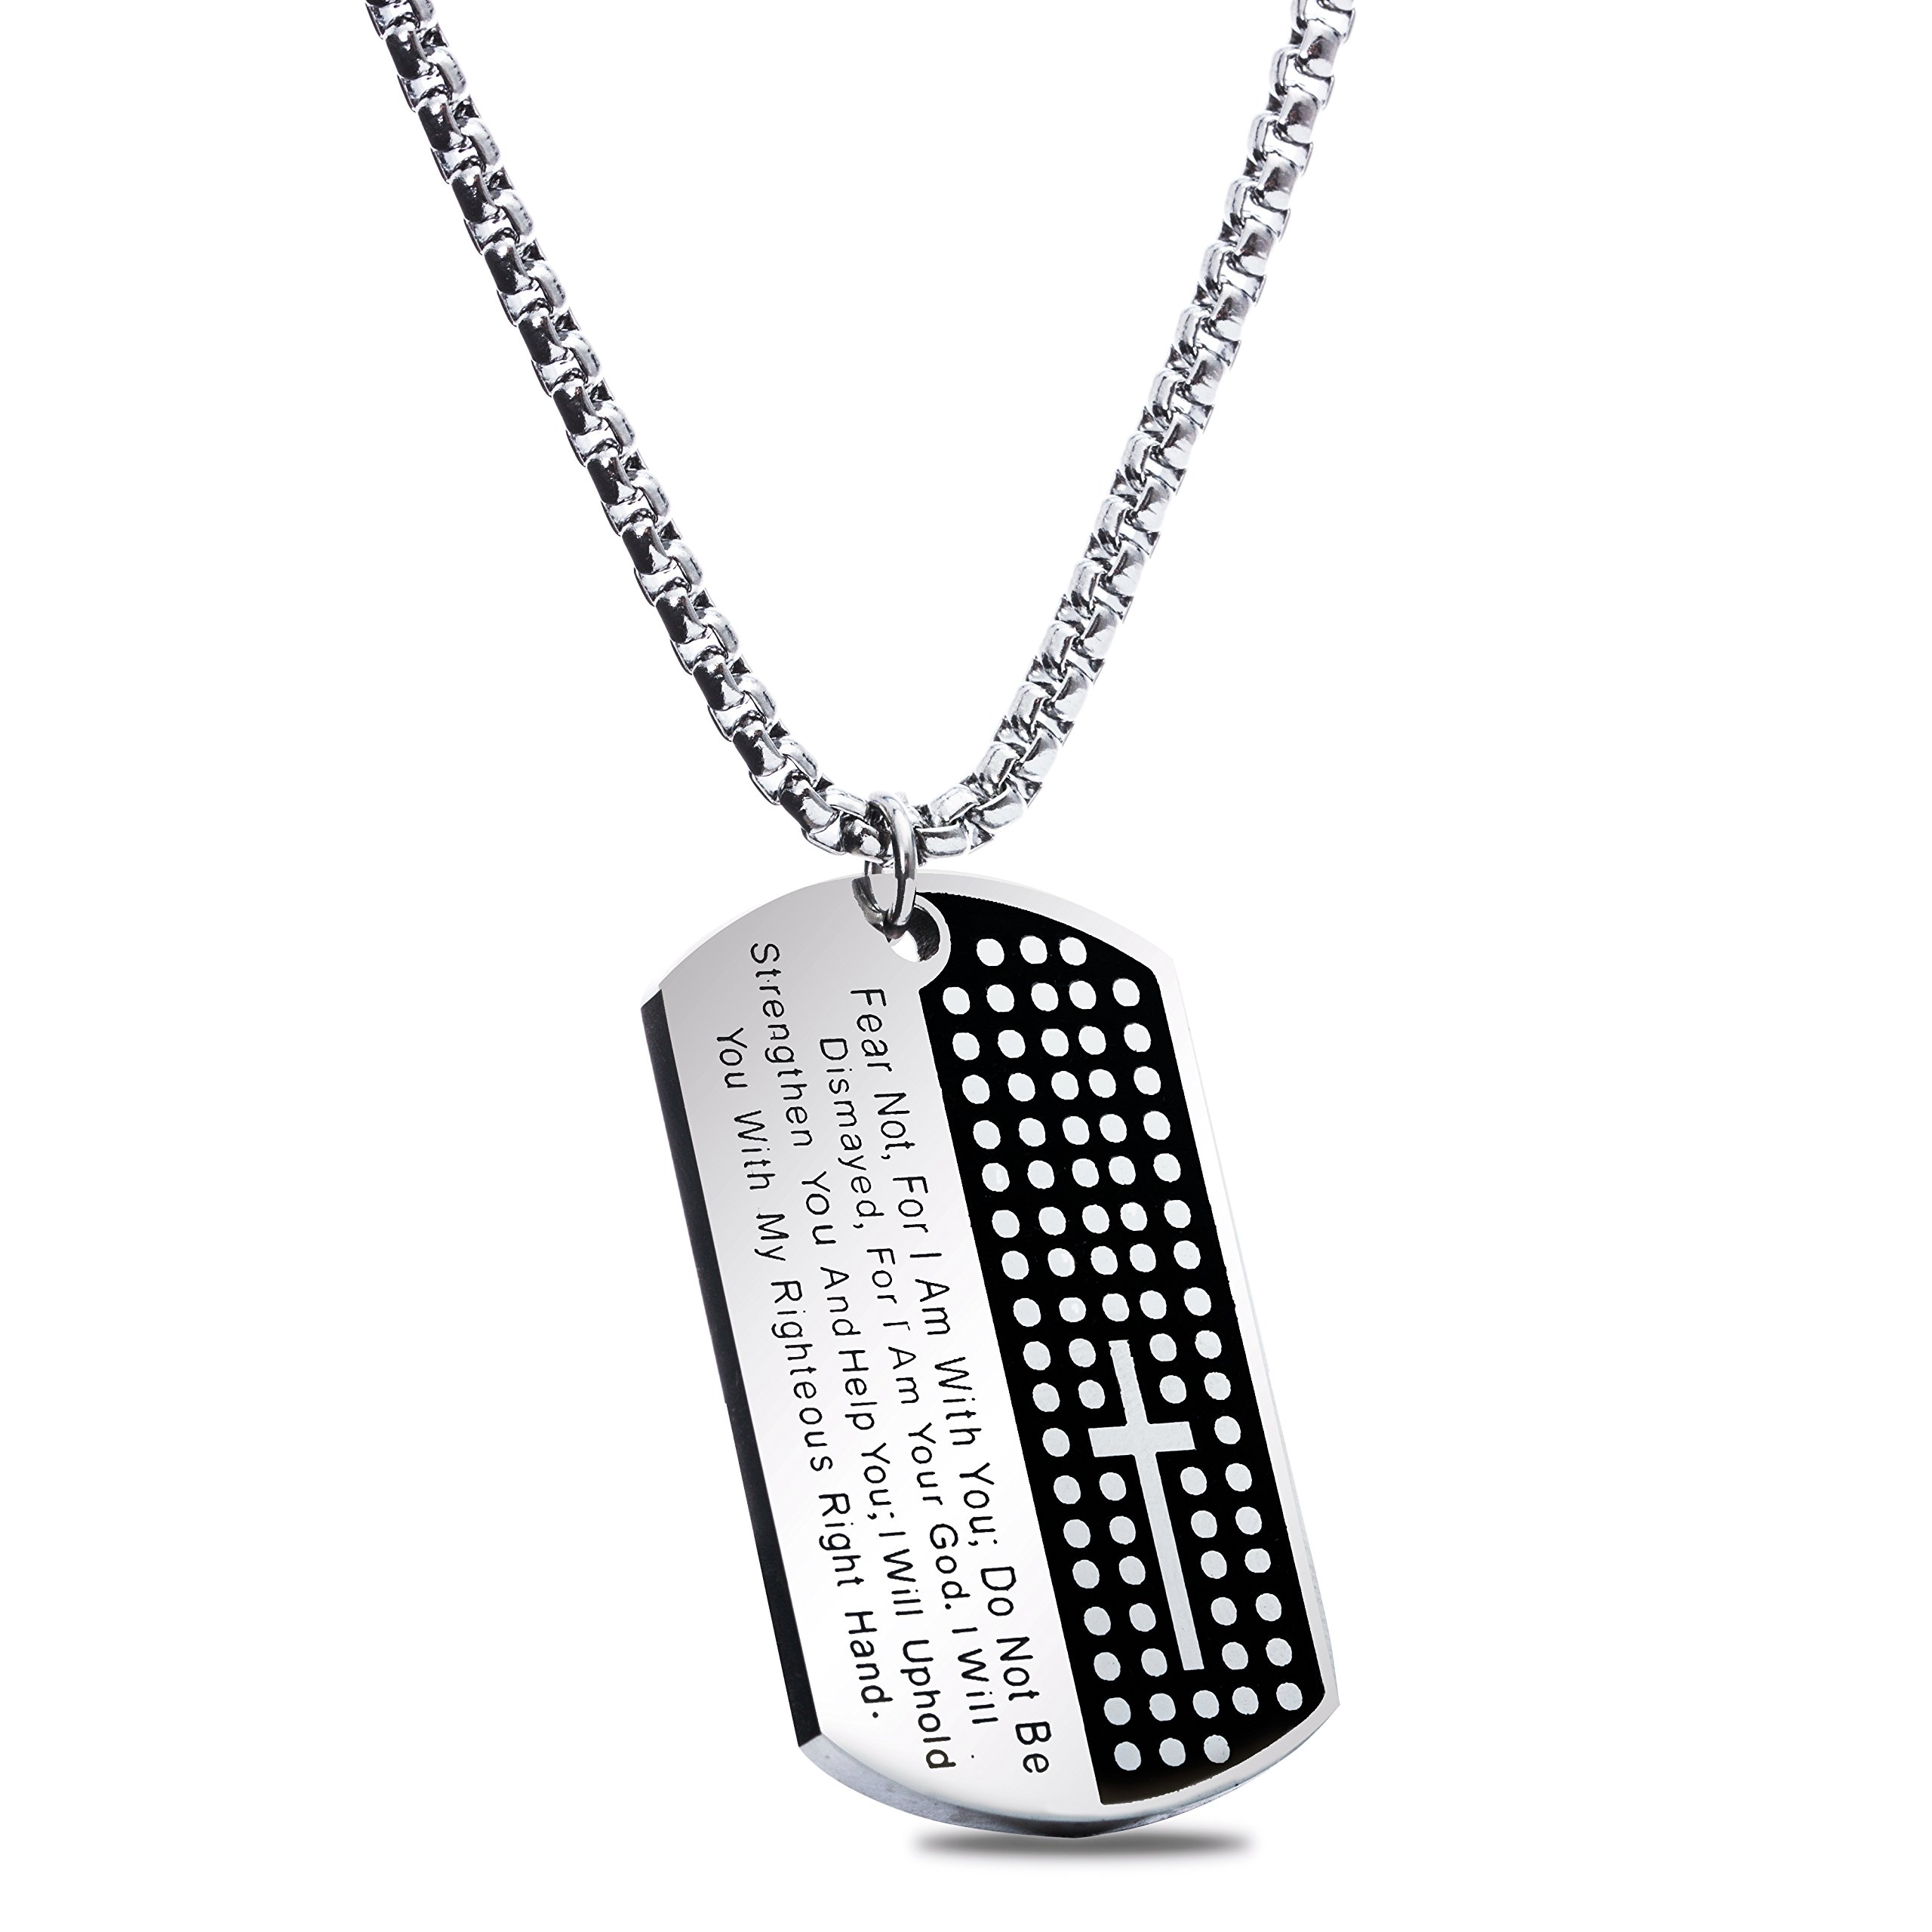 American Dog Tag w/ Isaiah 41:10 - ''Fear not'' Pendant - [Military Strength] Stainless Steel - Great Easter & Christmas Gift